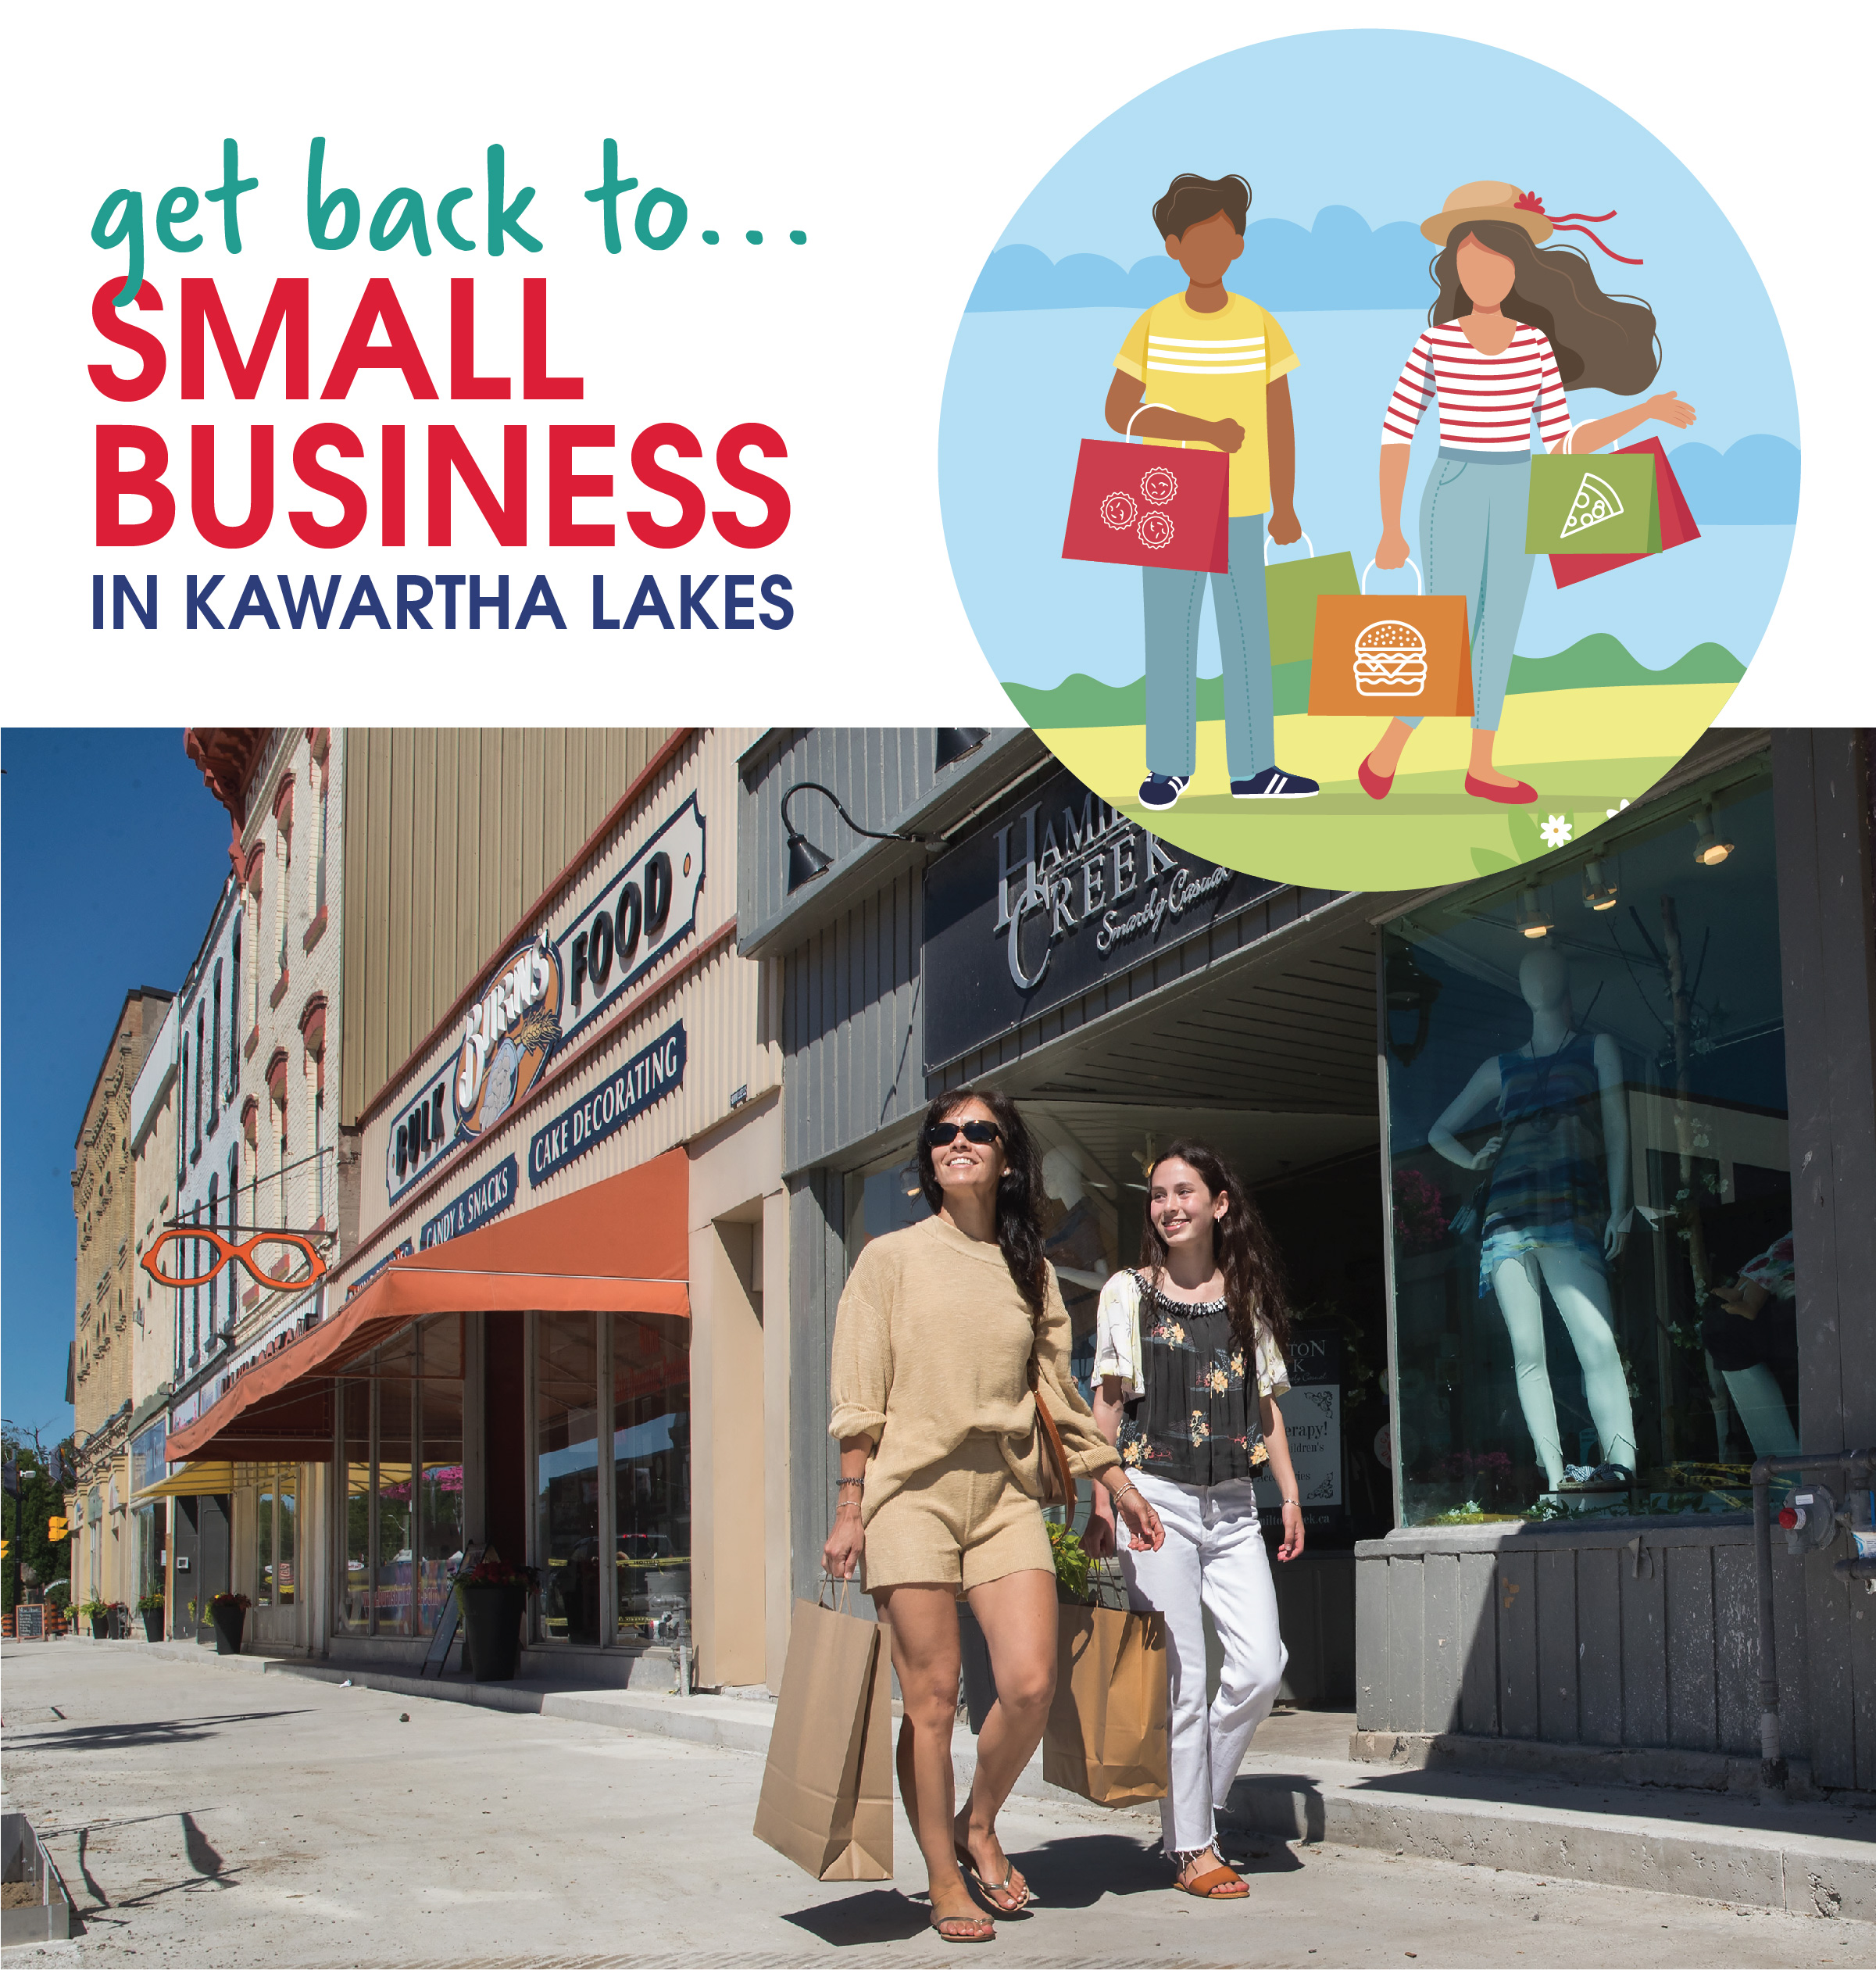 Get back to Small Business in Kawartha Lakes